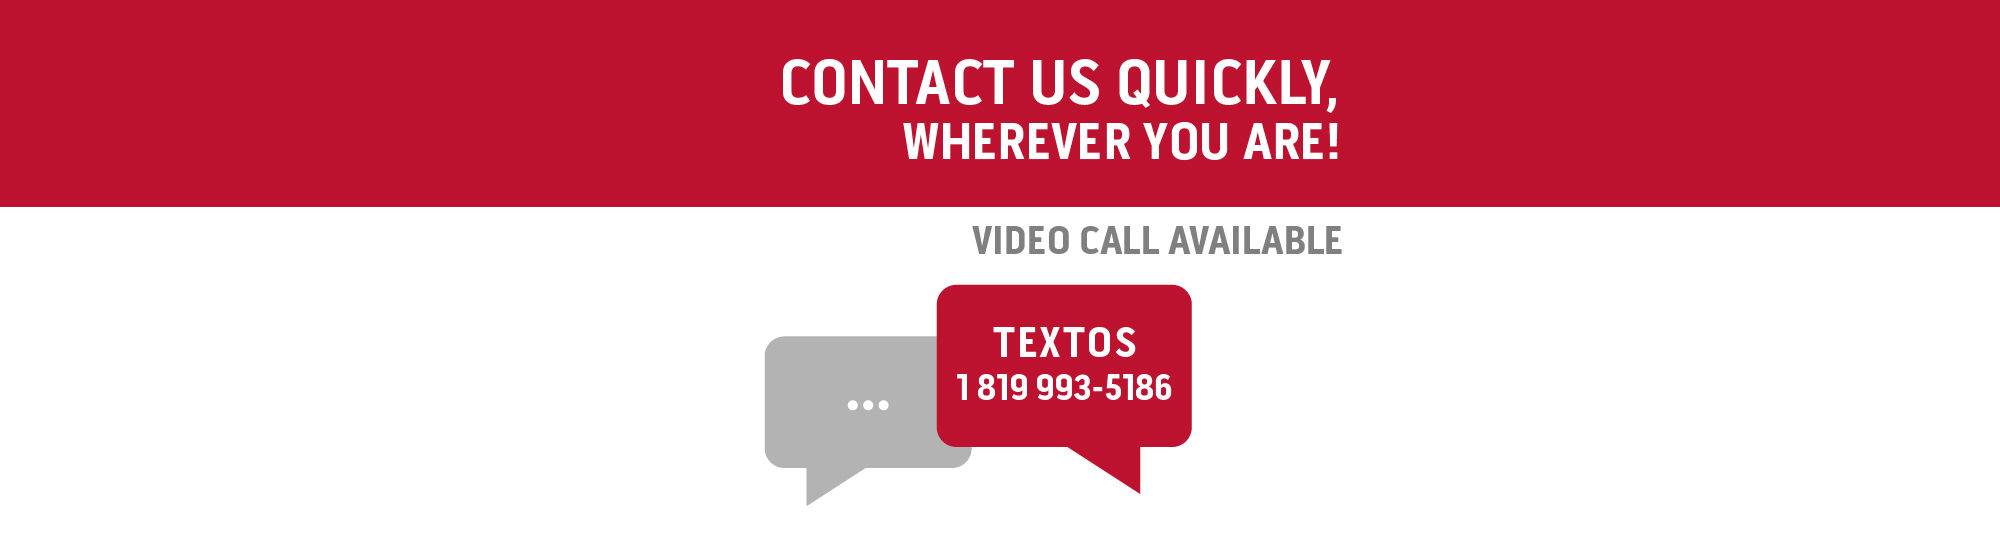 Contact us via Text message